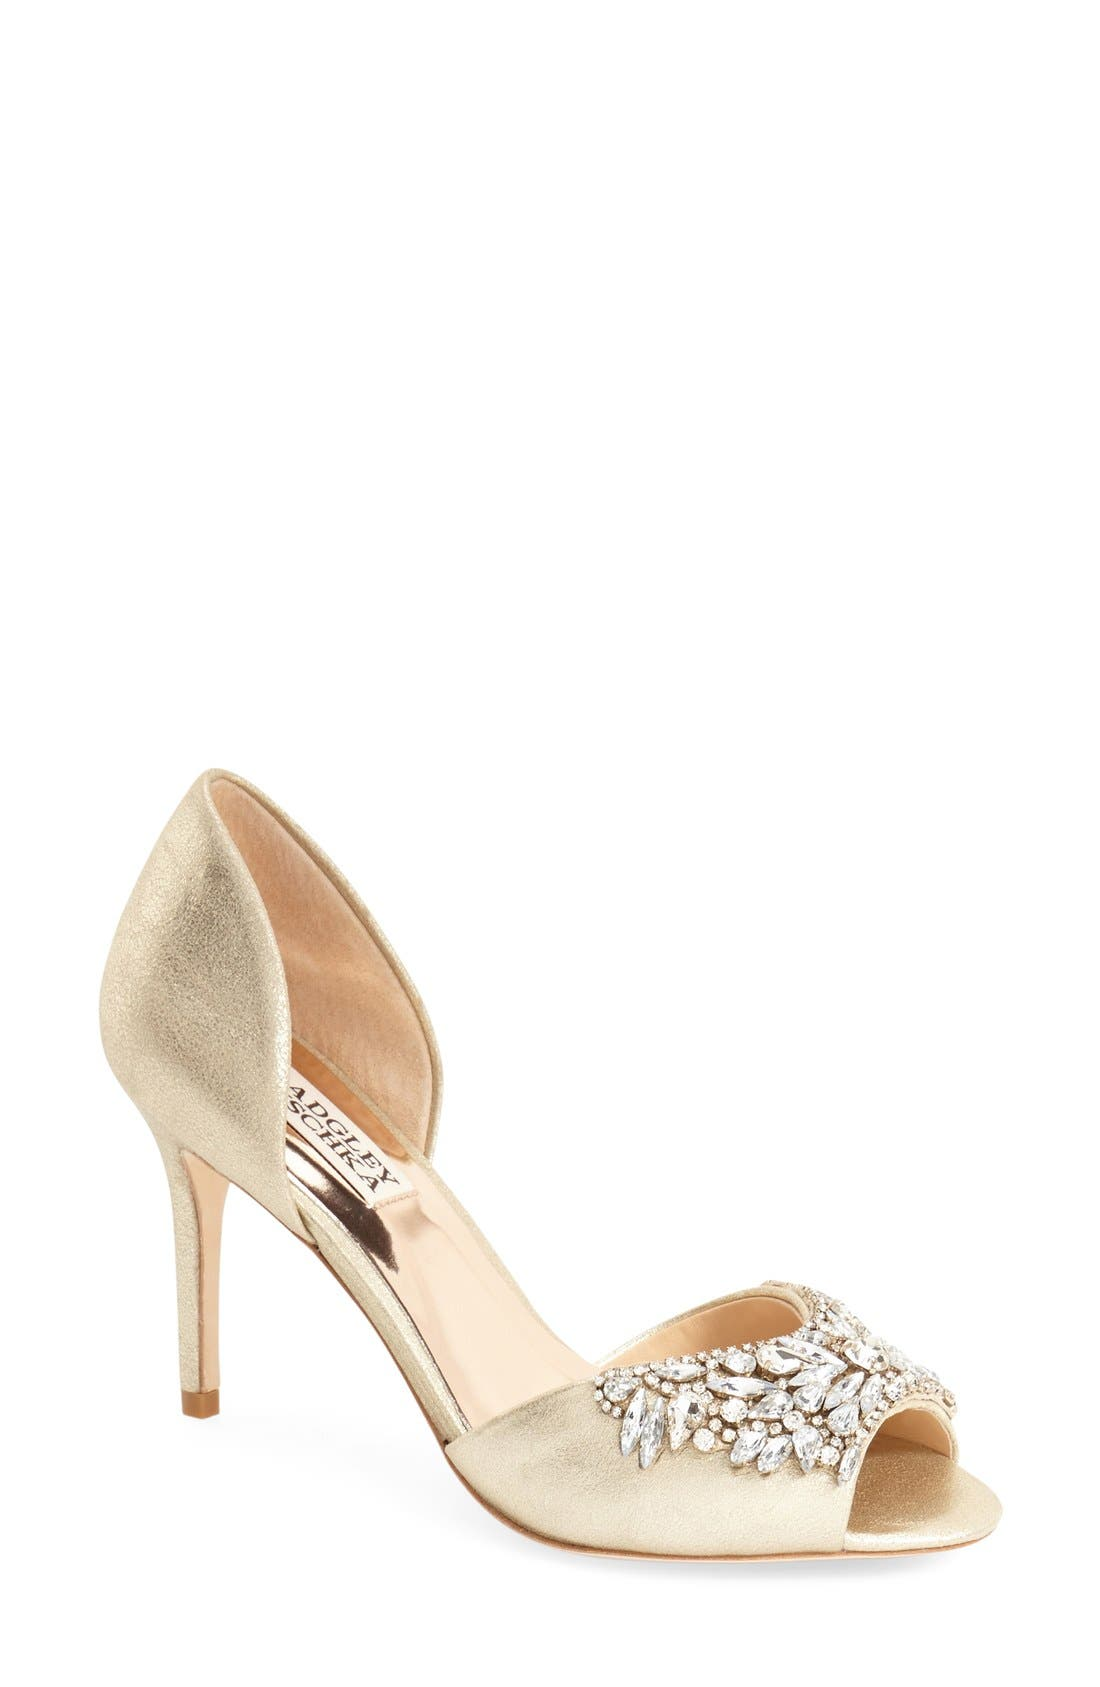 BADGLEY MISCHKA COLLECTION, Badgley Mischka 'Candance' Crystal Embellished d'Orsay Pump, Main thumbnail 1, color, 040